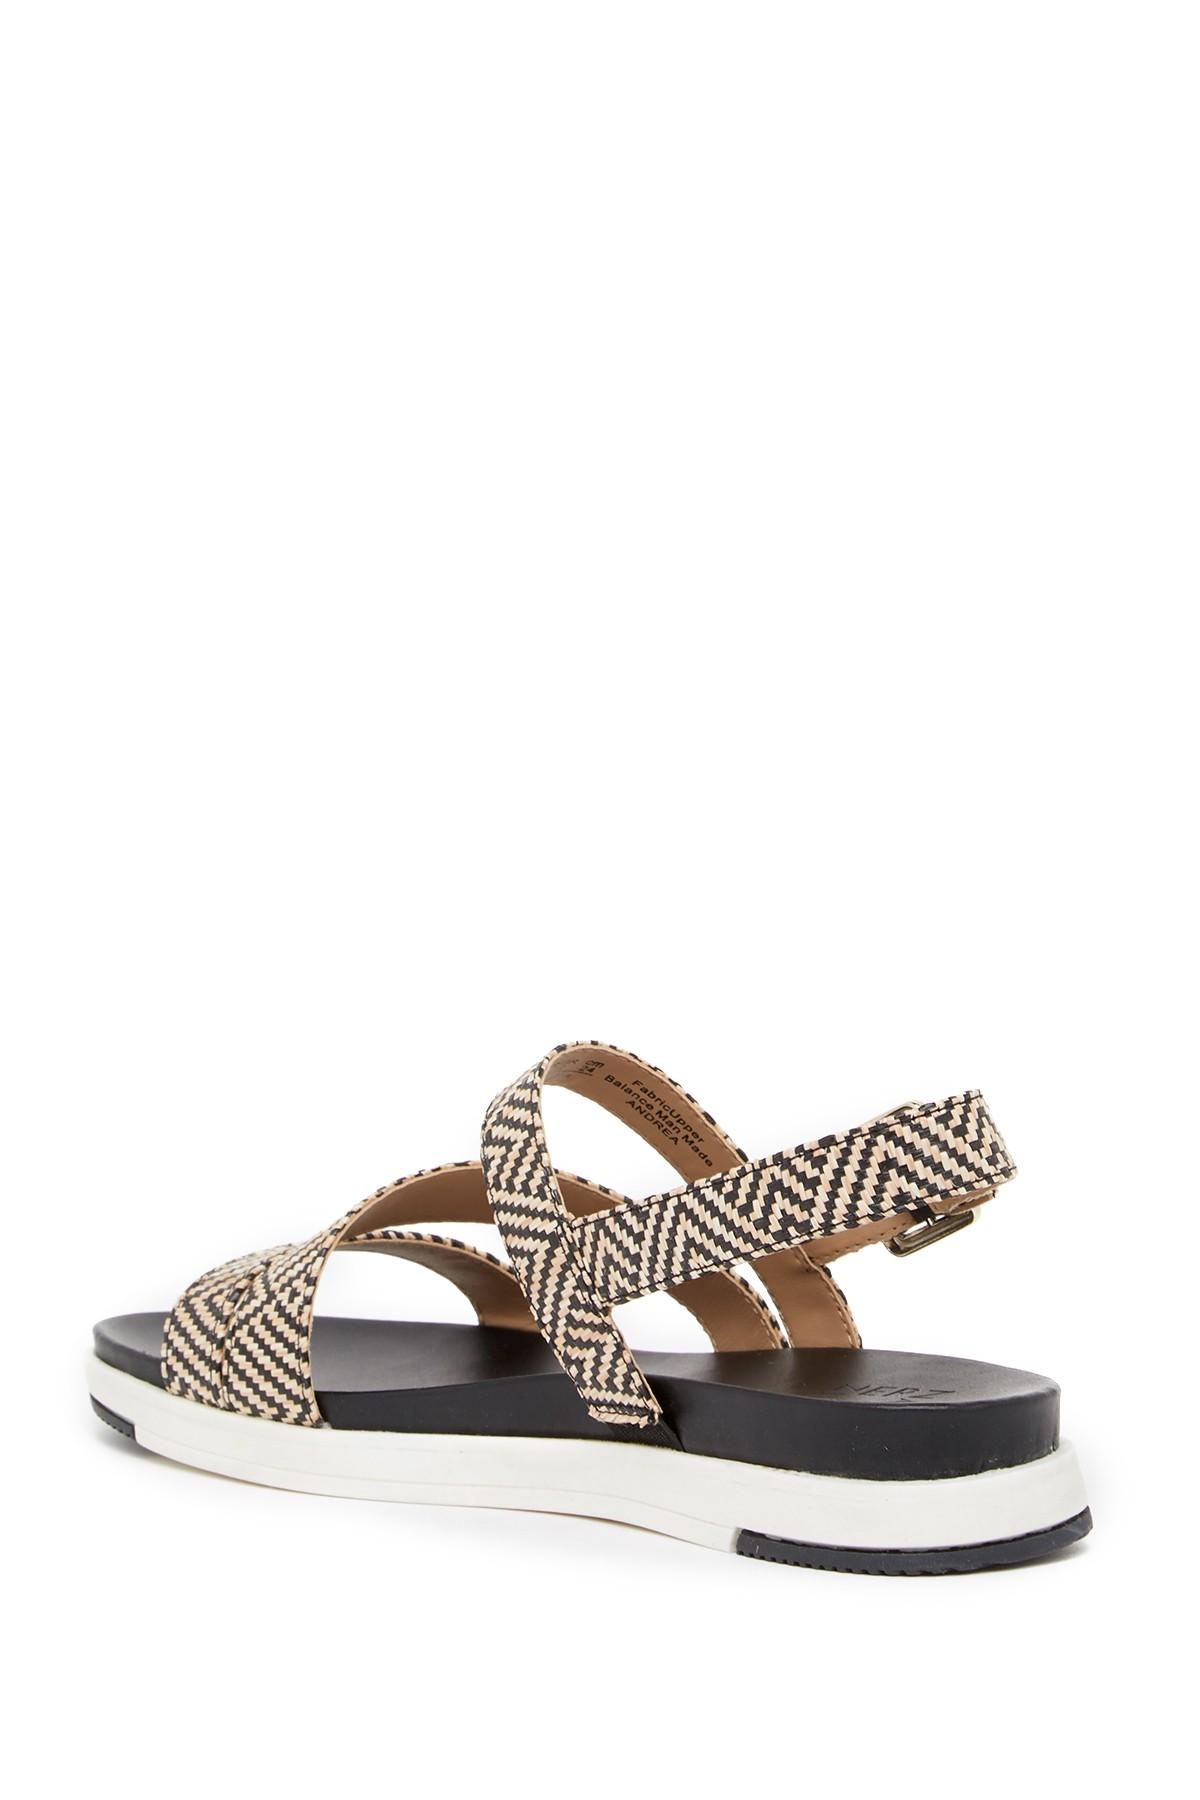 1349996baa33 Lyst - Naturalizer Andrea Woven Sandal